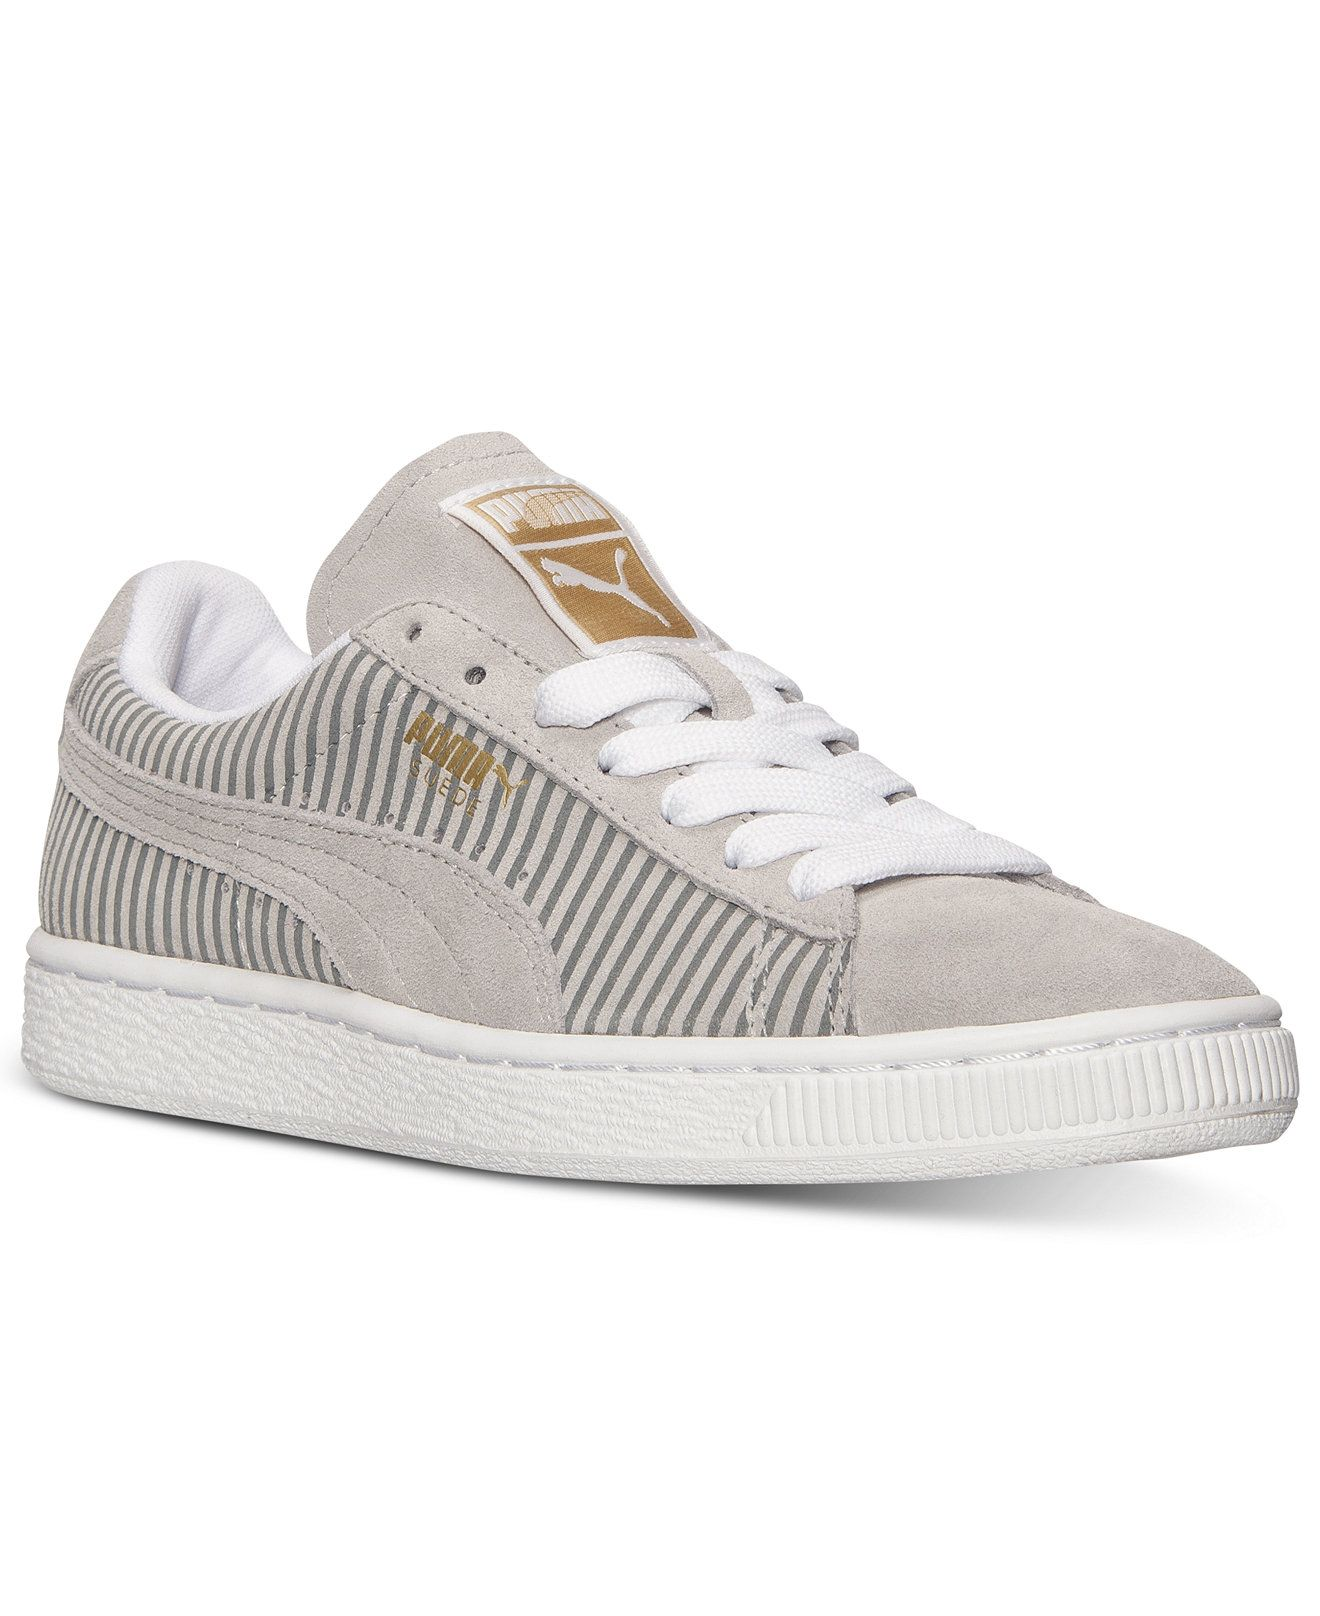 Puma Women s Suede Classic Lo Casual Sneakers from Finish Line - Finish Line  Athletic Shoes - Shoes - Macy s 9617b55aa